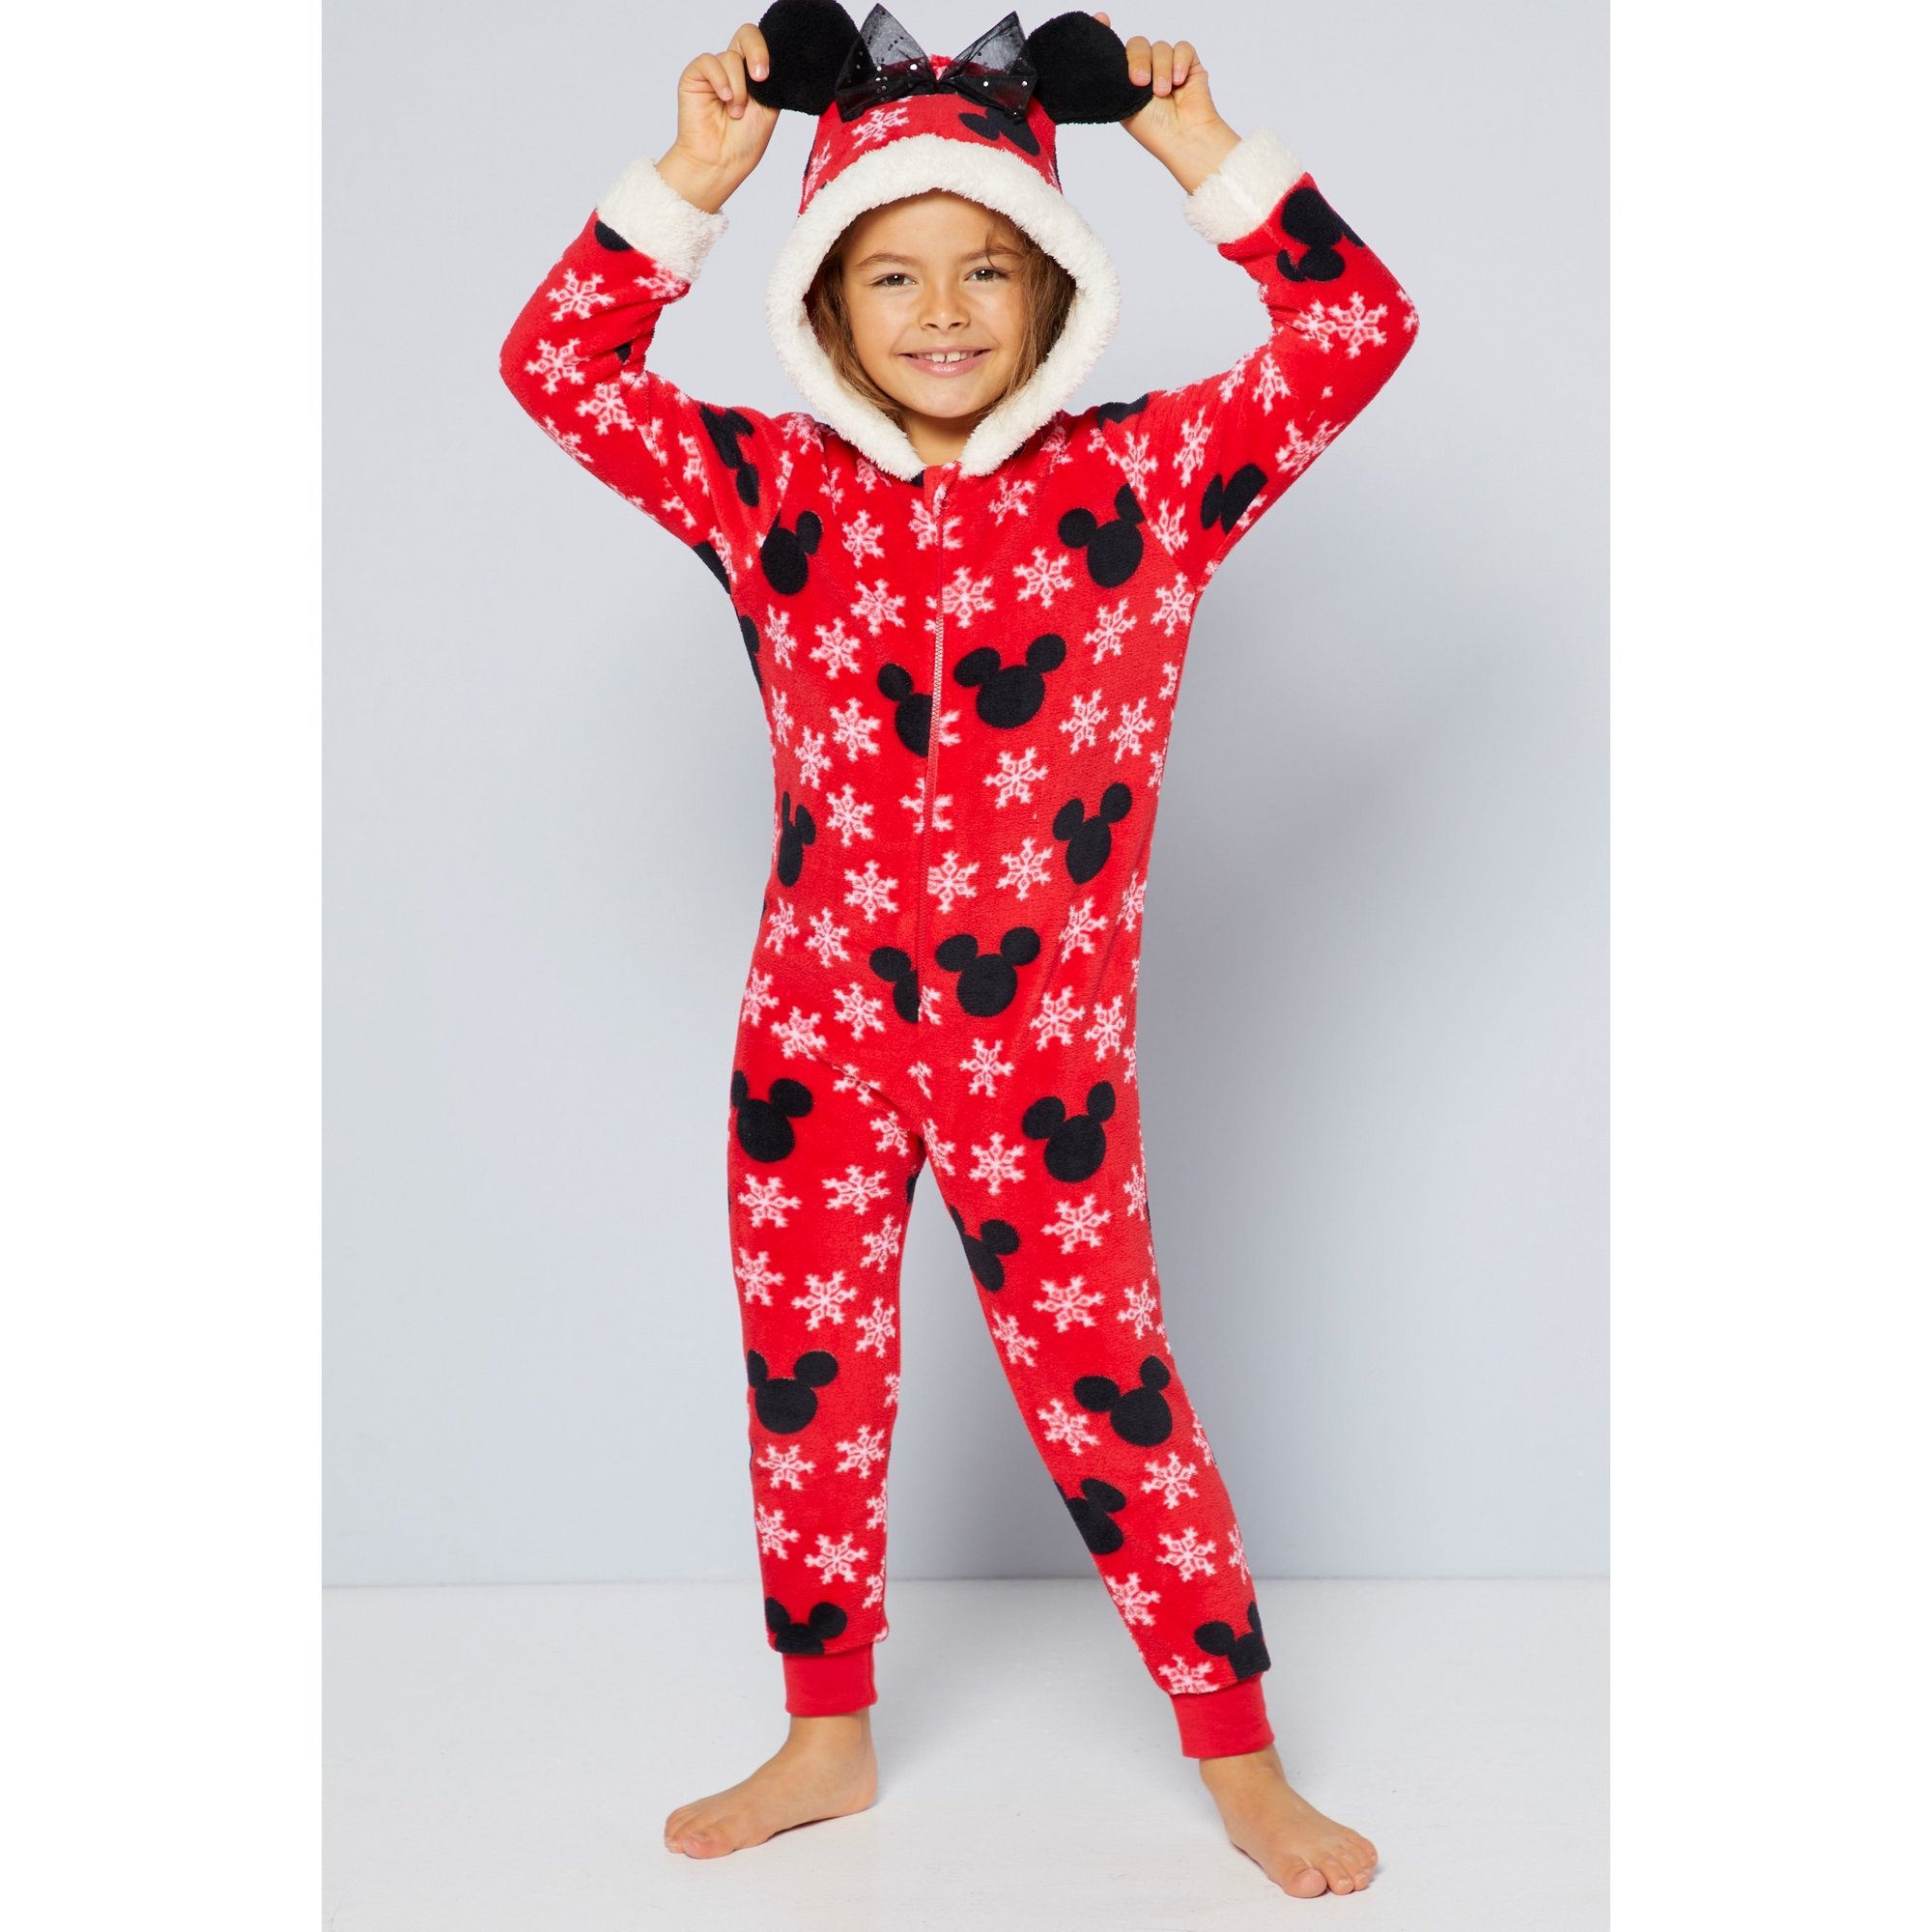 Image of Girls Minnie Mouse Ears Hooded Christmas Onesie Pyjamas with Bow